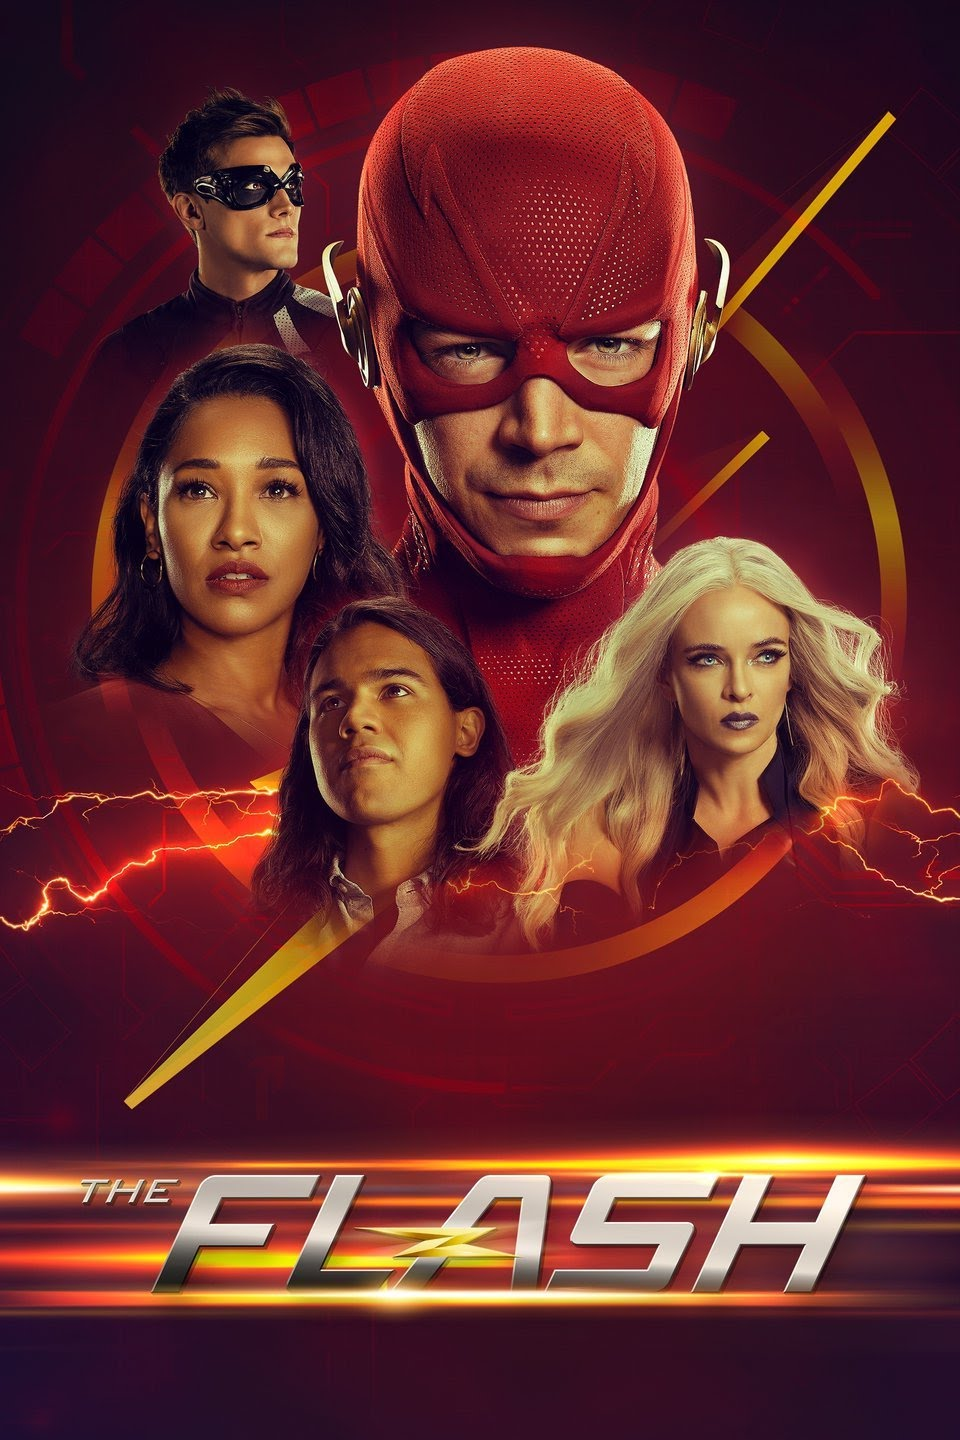 The Flash (Season 1-6) {English With Subtitles} 720p HEVC Bluray [250MB]